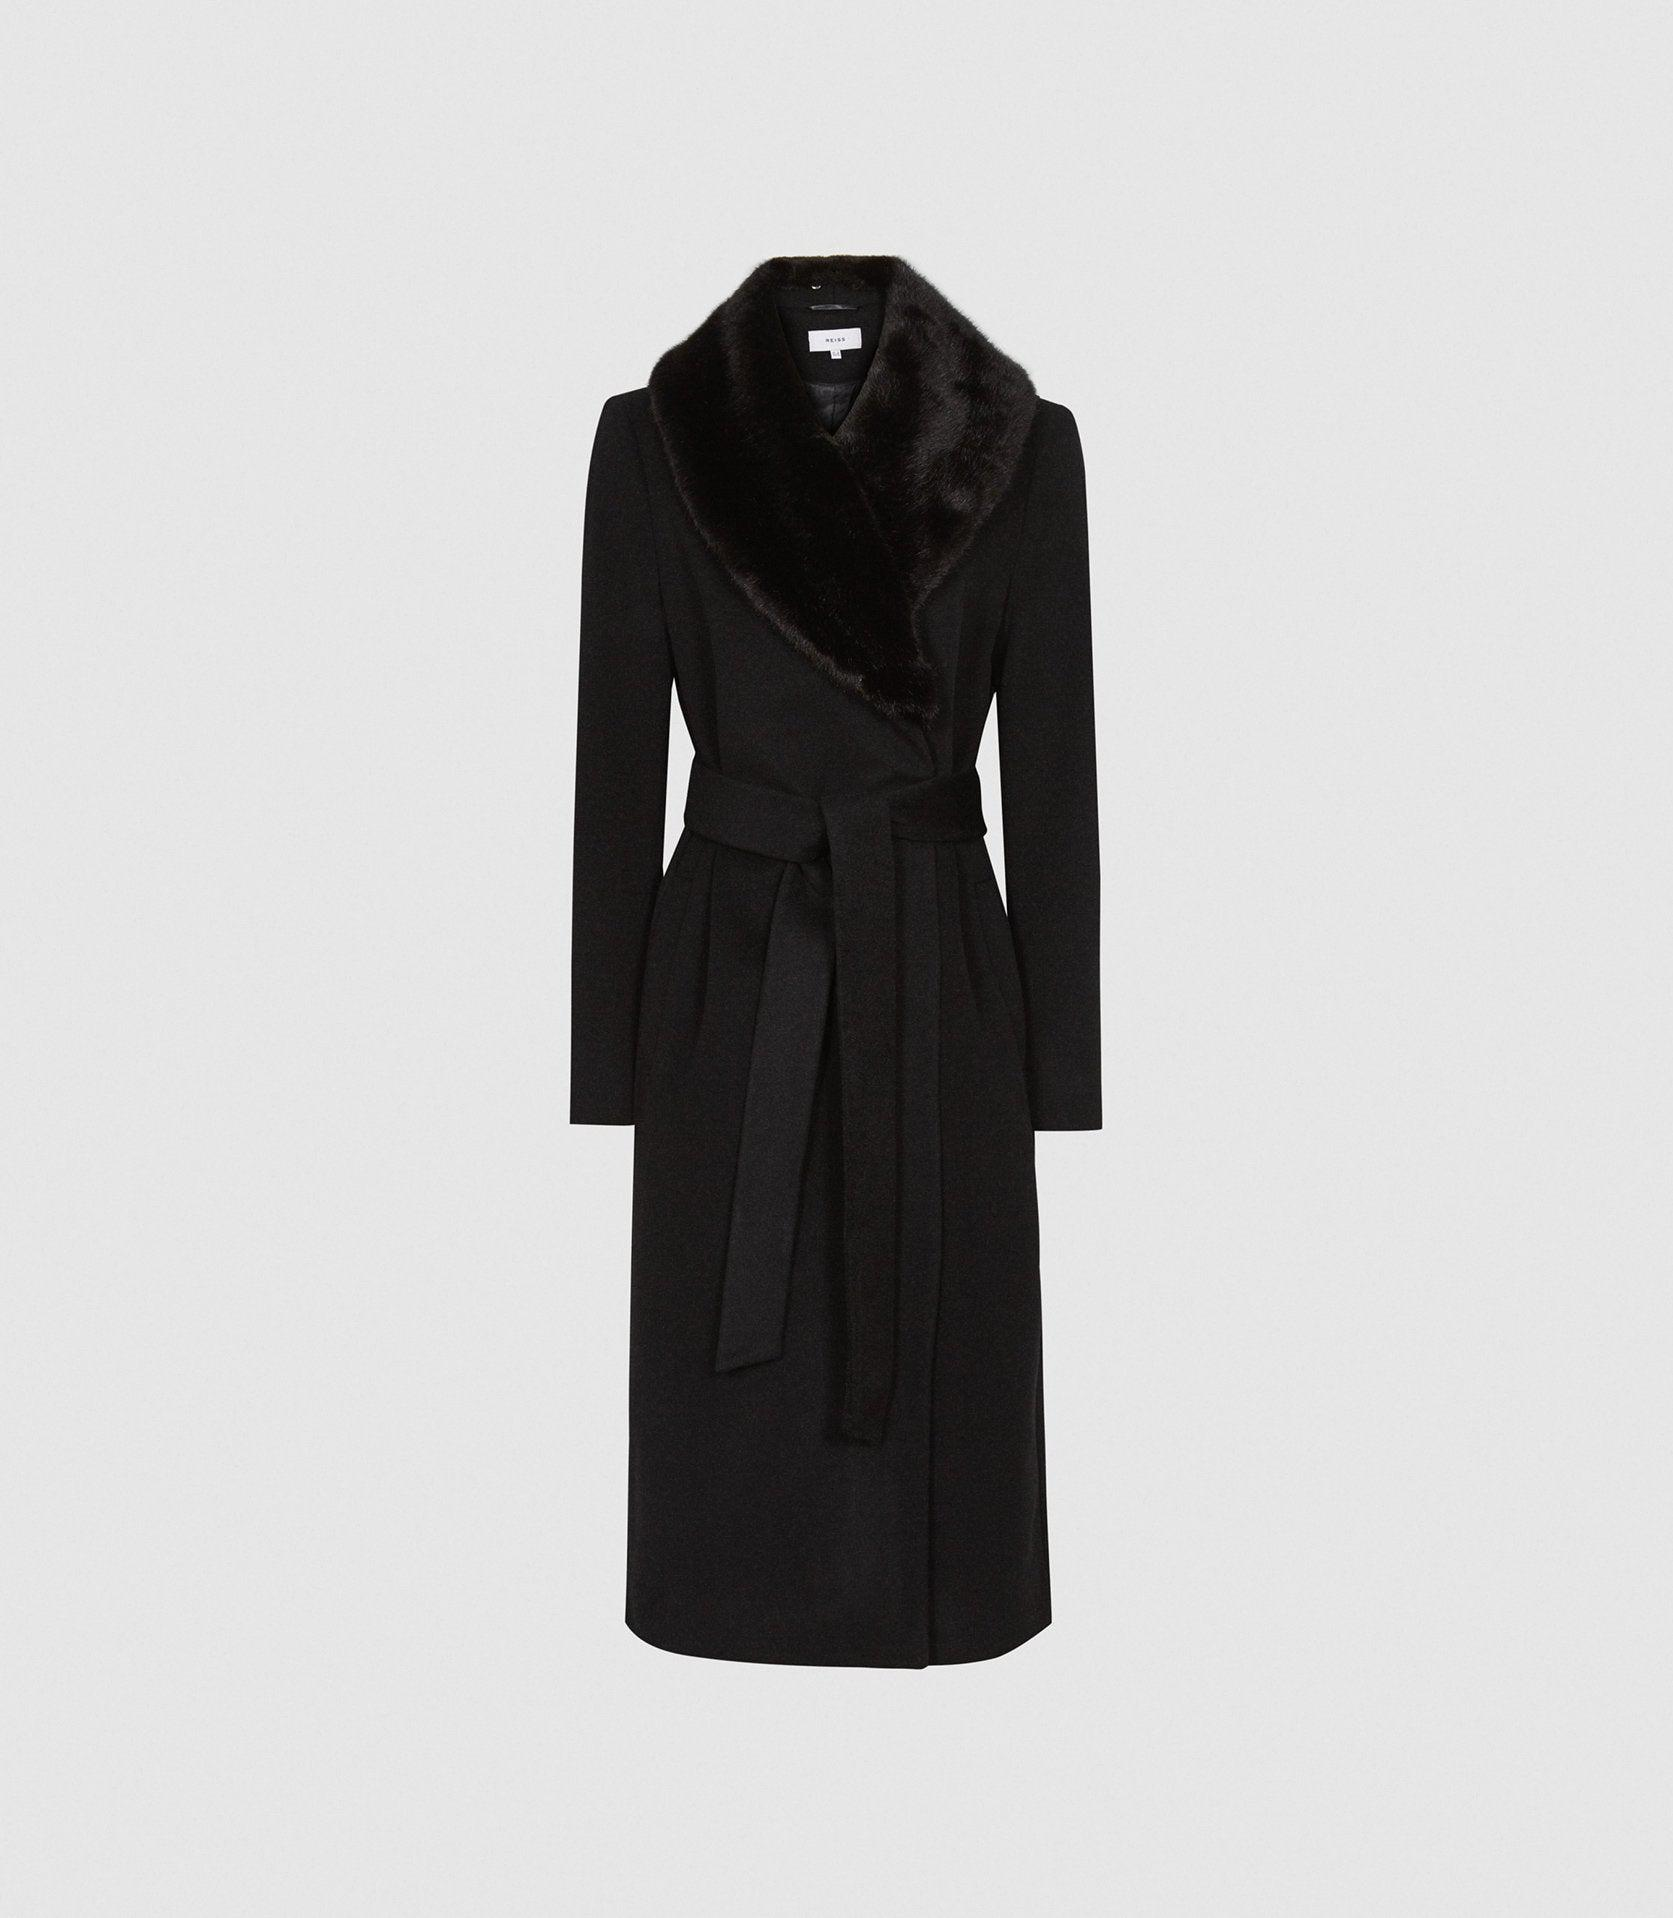 PACEY - FAUX FUR SHAWL COLLAR OVERCOAT 4